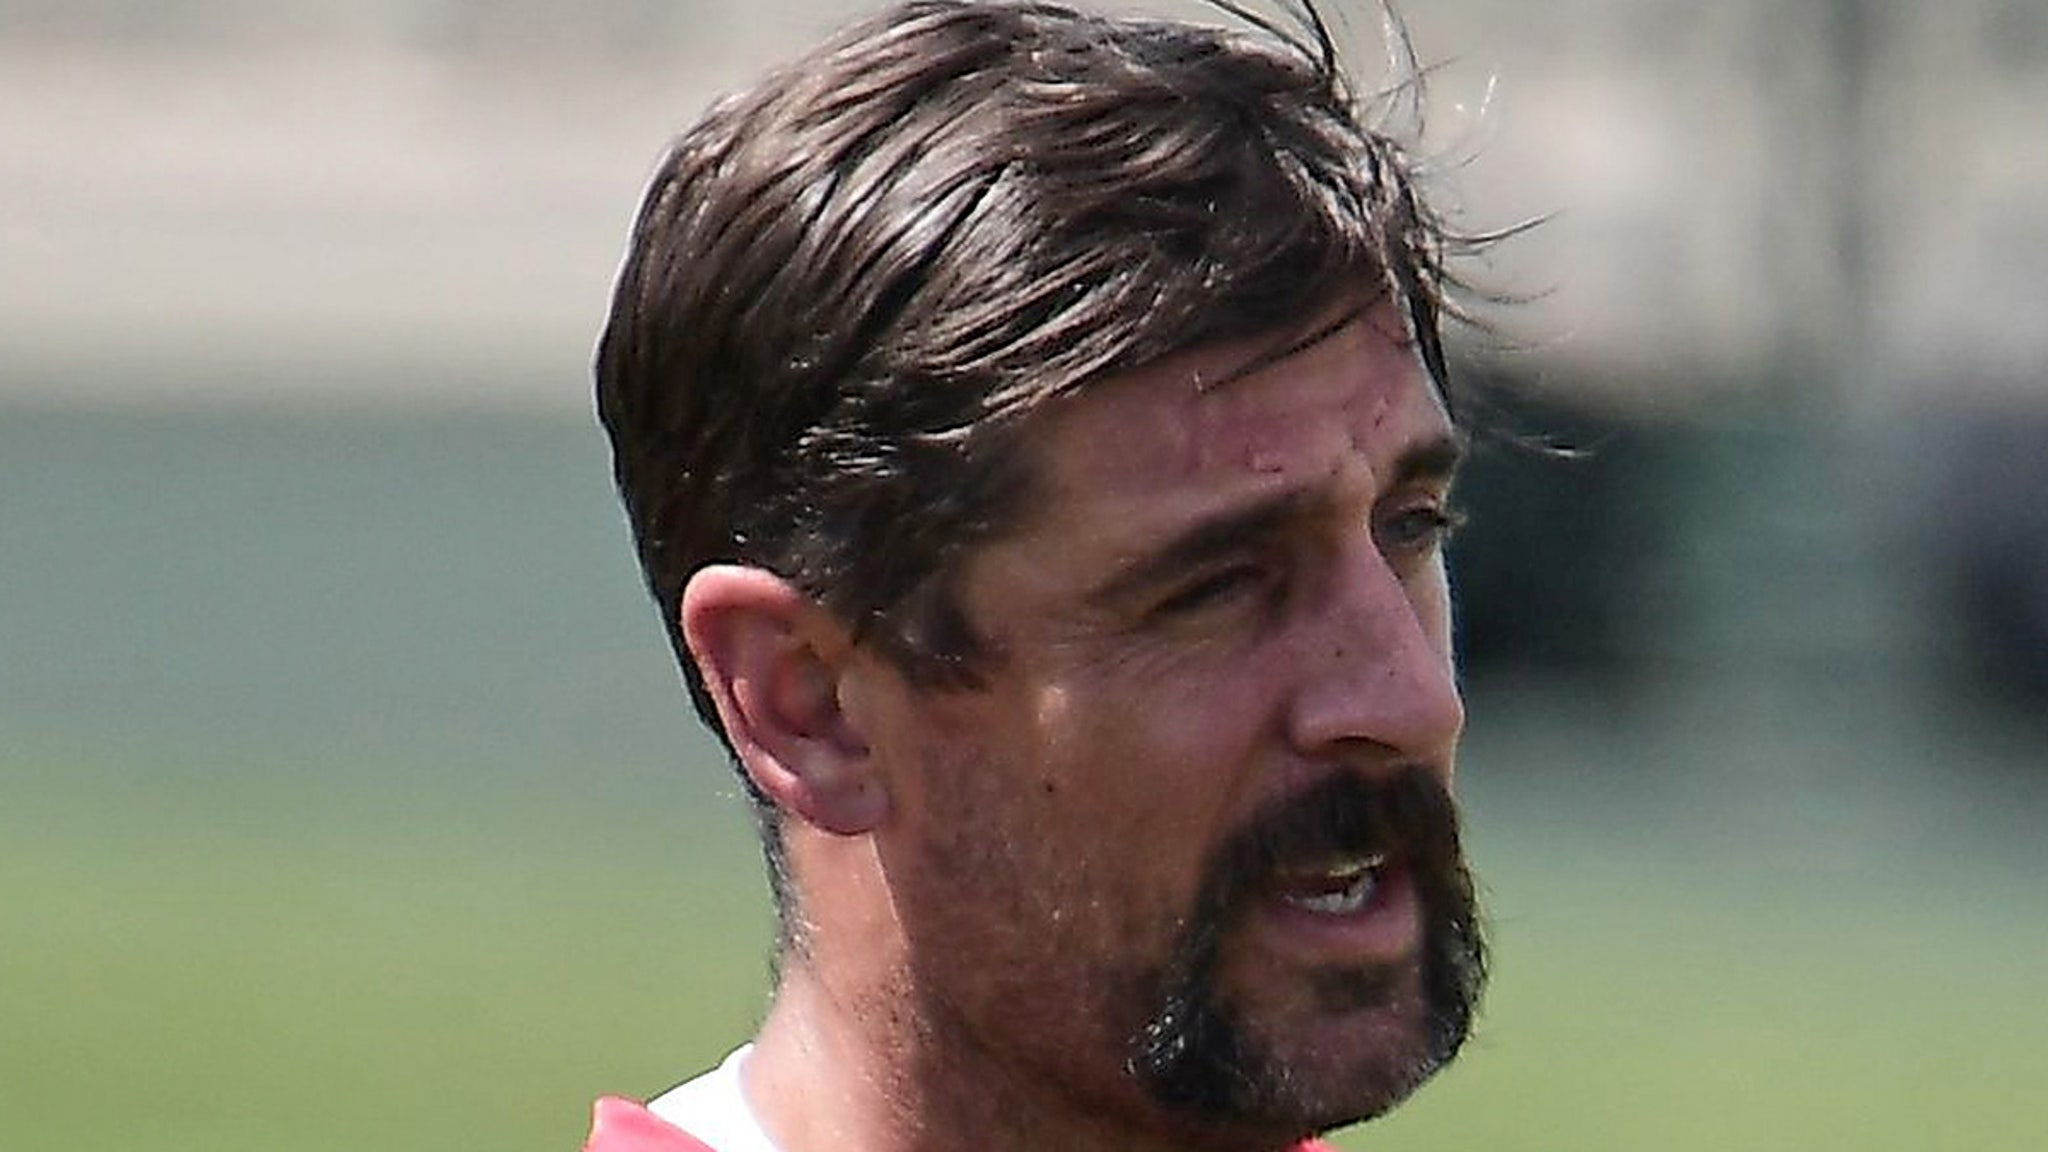 Aaron Rodgers Questions NFL's COVID Protocol 'Are We Doing This Based on Science?'